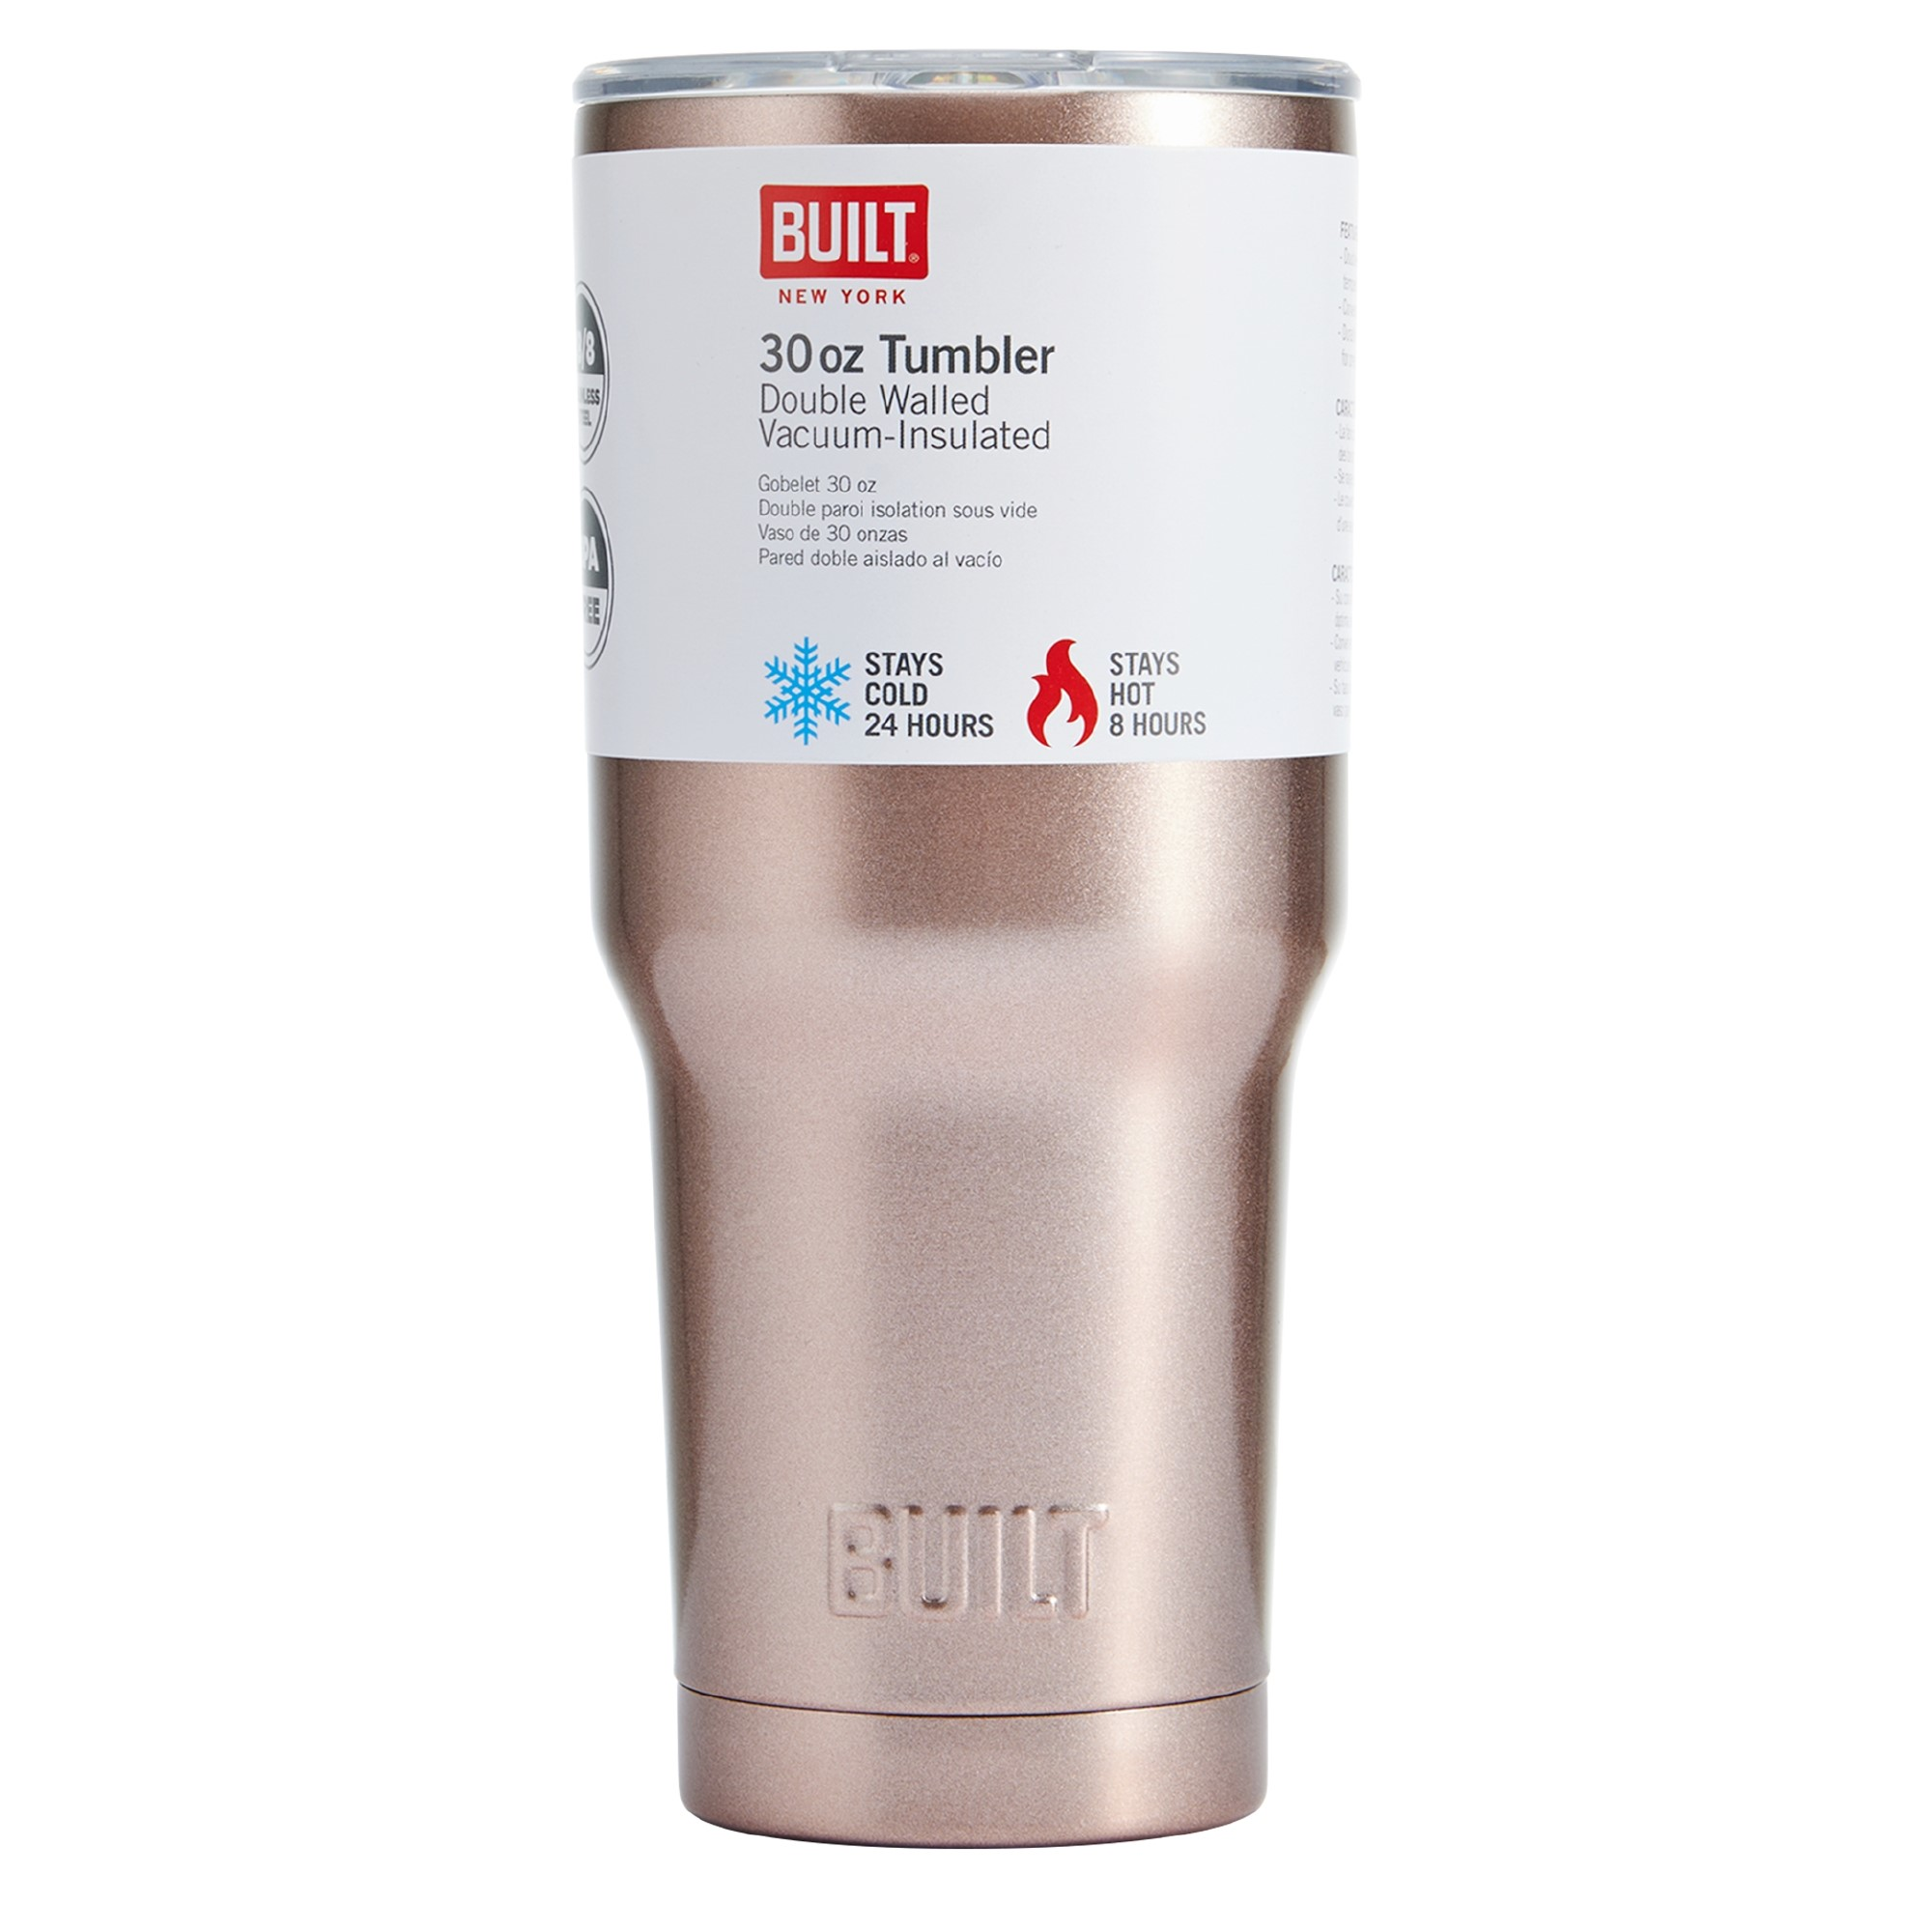 98ffcf23a52 Built 30 Oz Double Wall Stainless Steel Tumbler, Rose Gold - Walmart.com